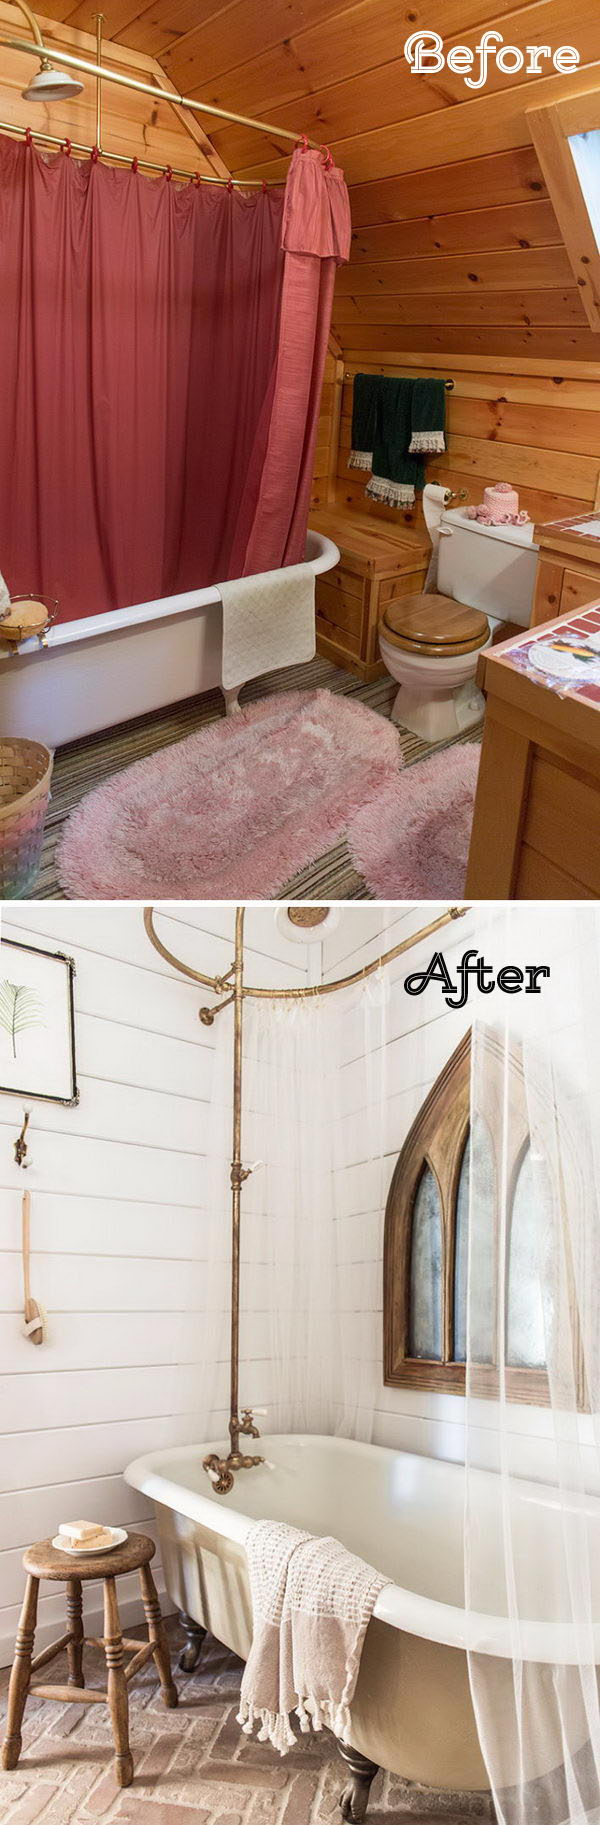 A Cozy Bathroom Gets A Farmhouse Facelift Featuring All Our Favorite Things .